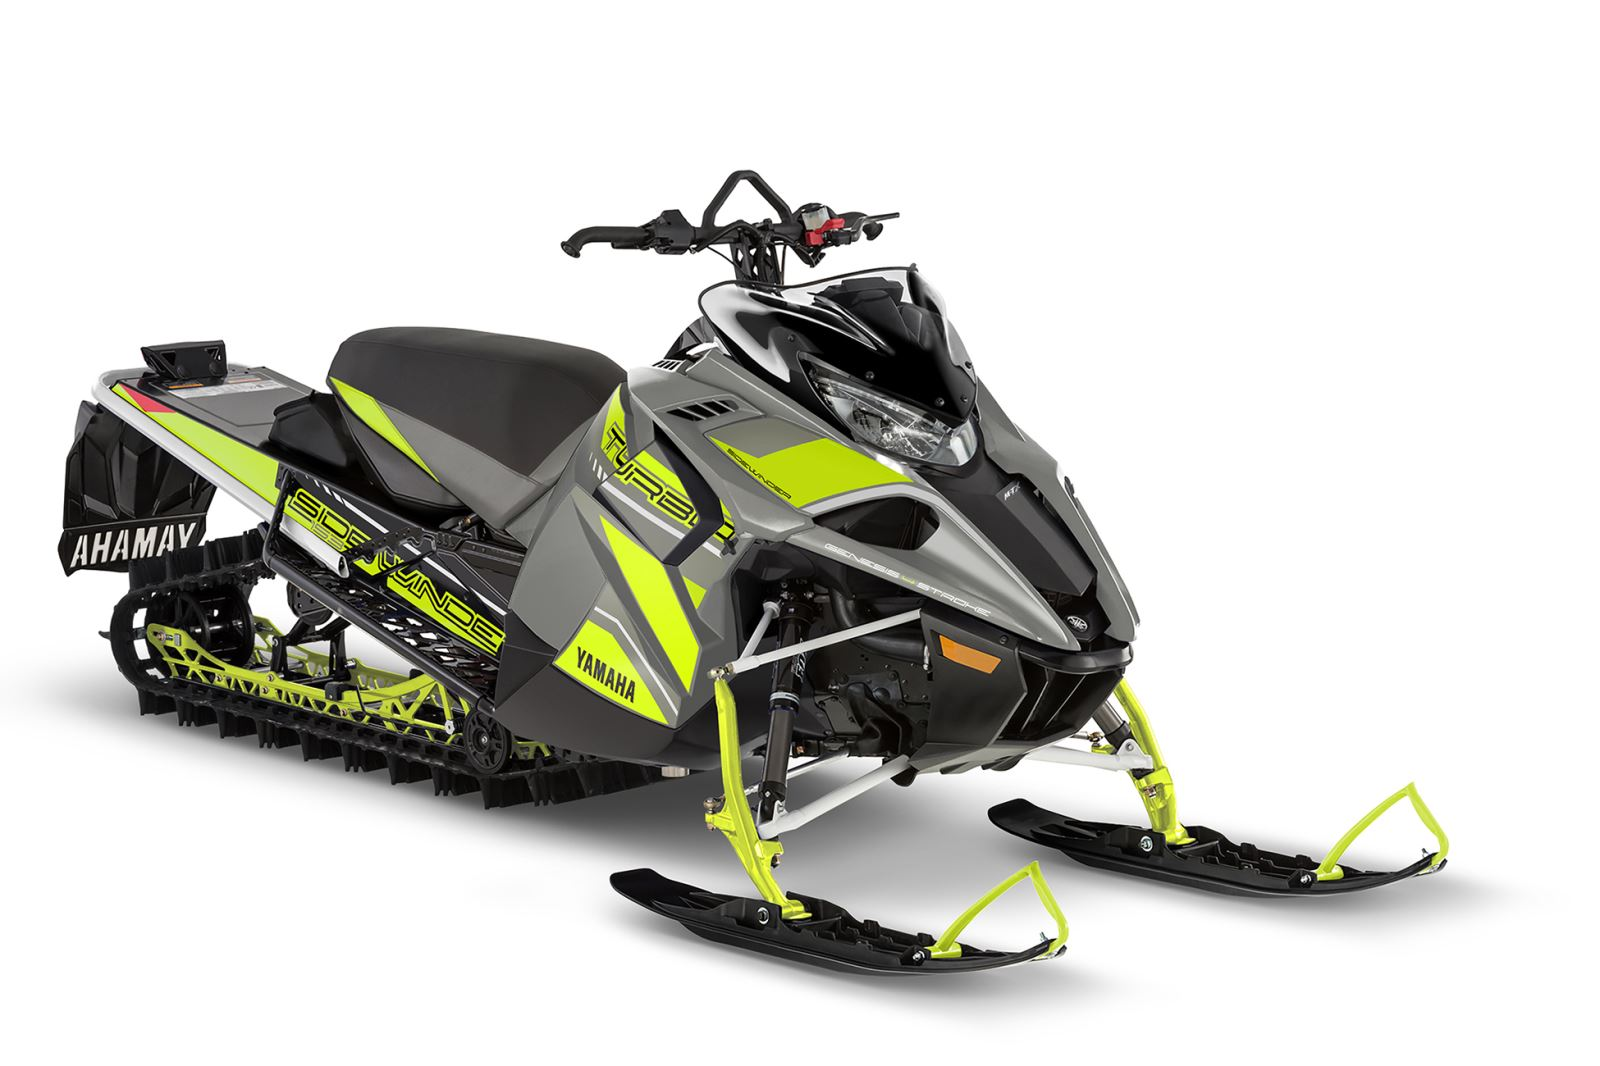 2018 yamahas page 2 ty4stroke snowmobile forum for 2018 yamaha snowmobiles